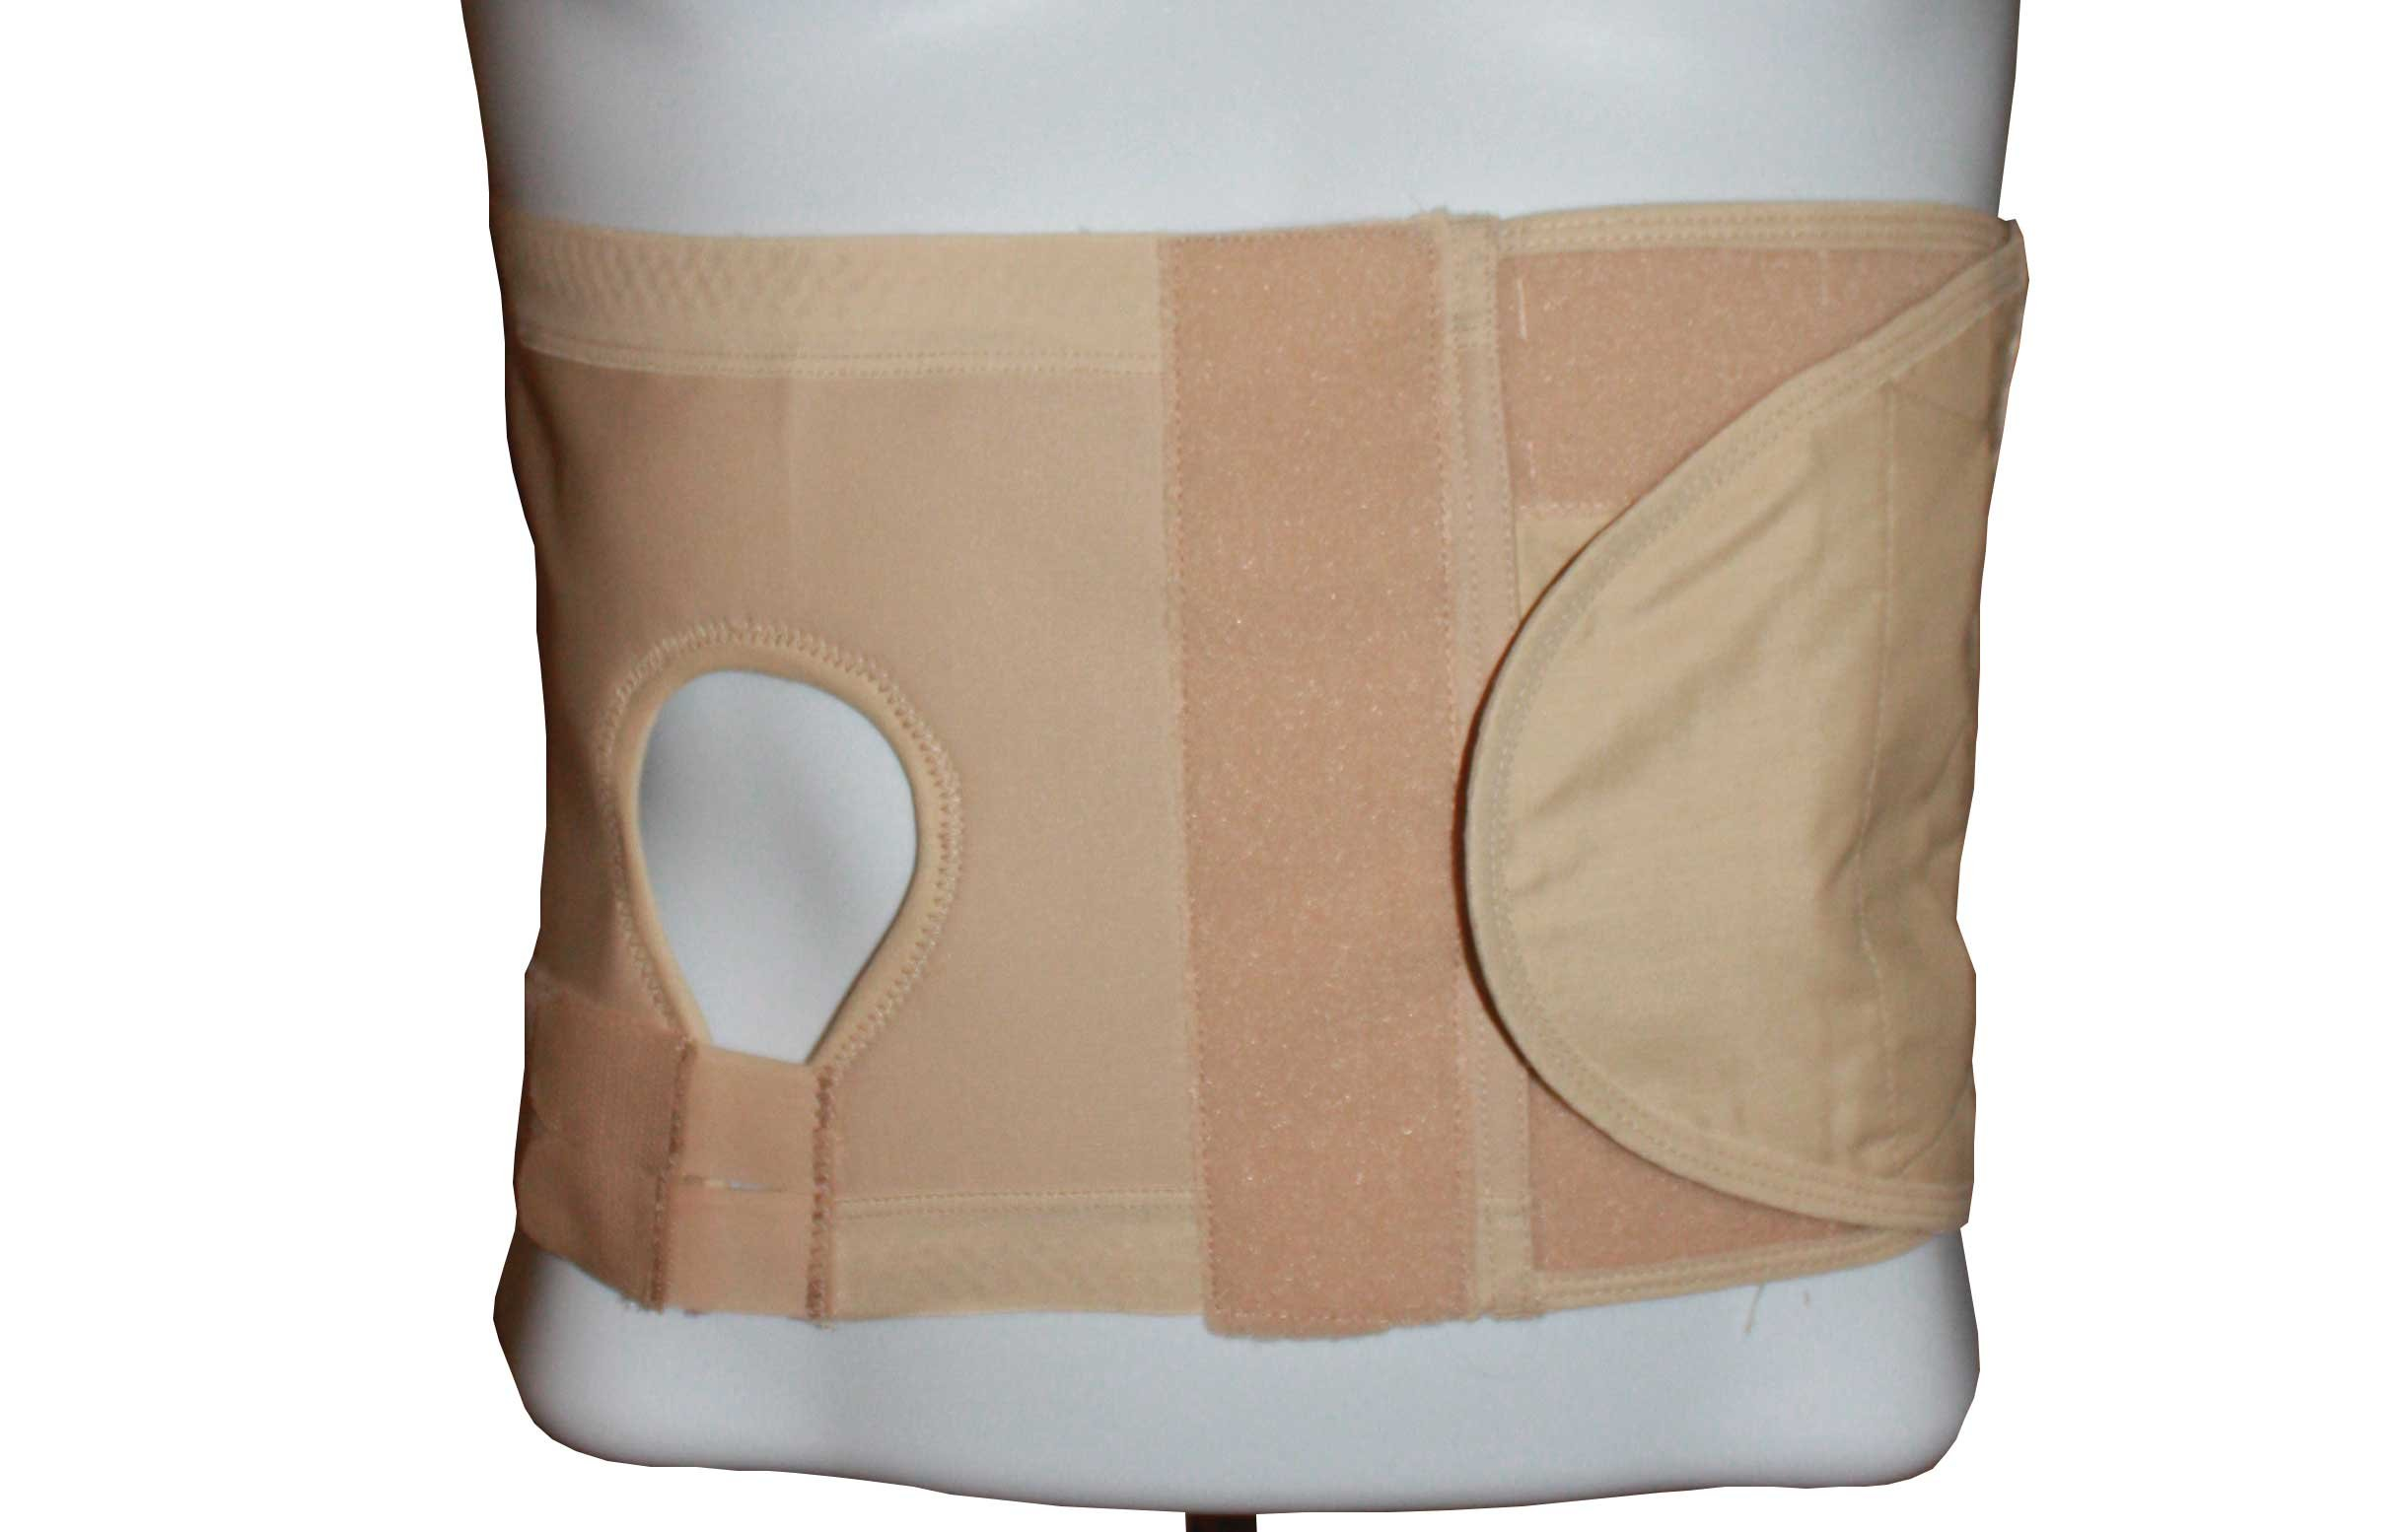 Safe n' Simple Left Hernia Support Belt with Adjustable Hole, 20cm, Beige, Small by Safe n' Simple